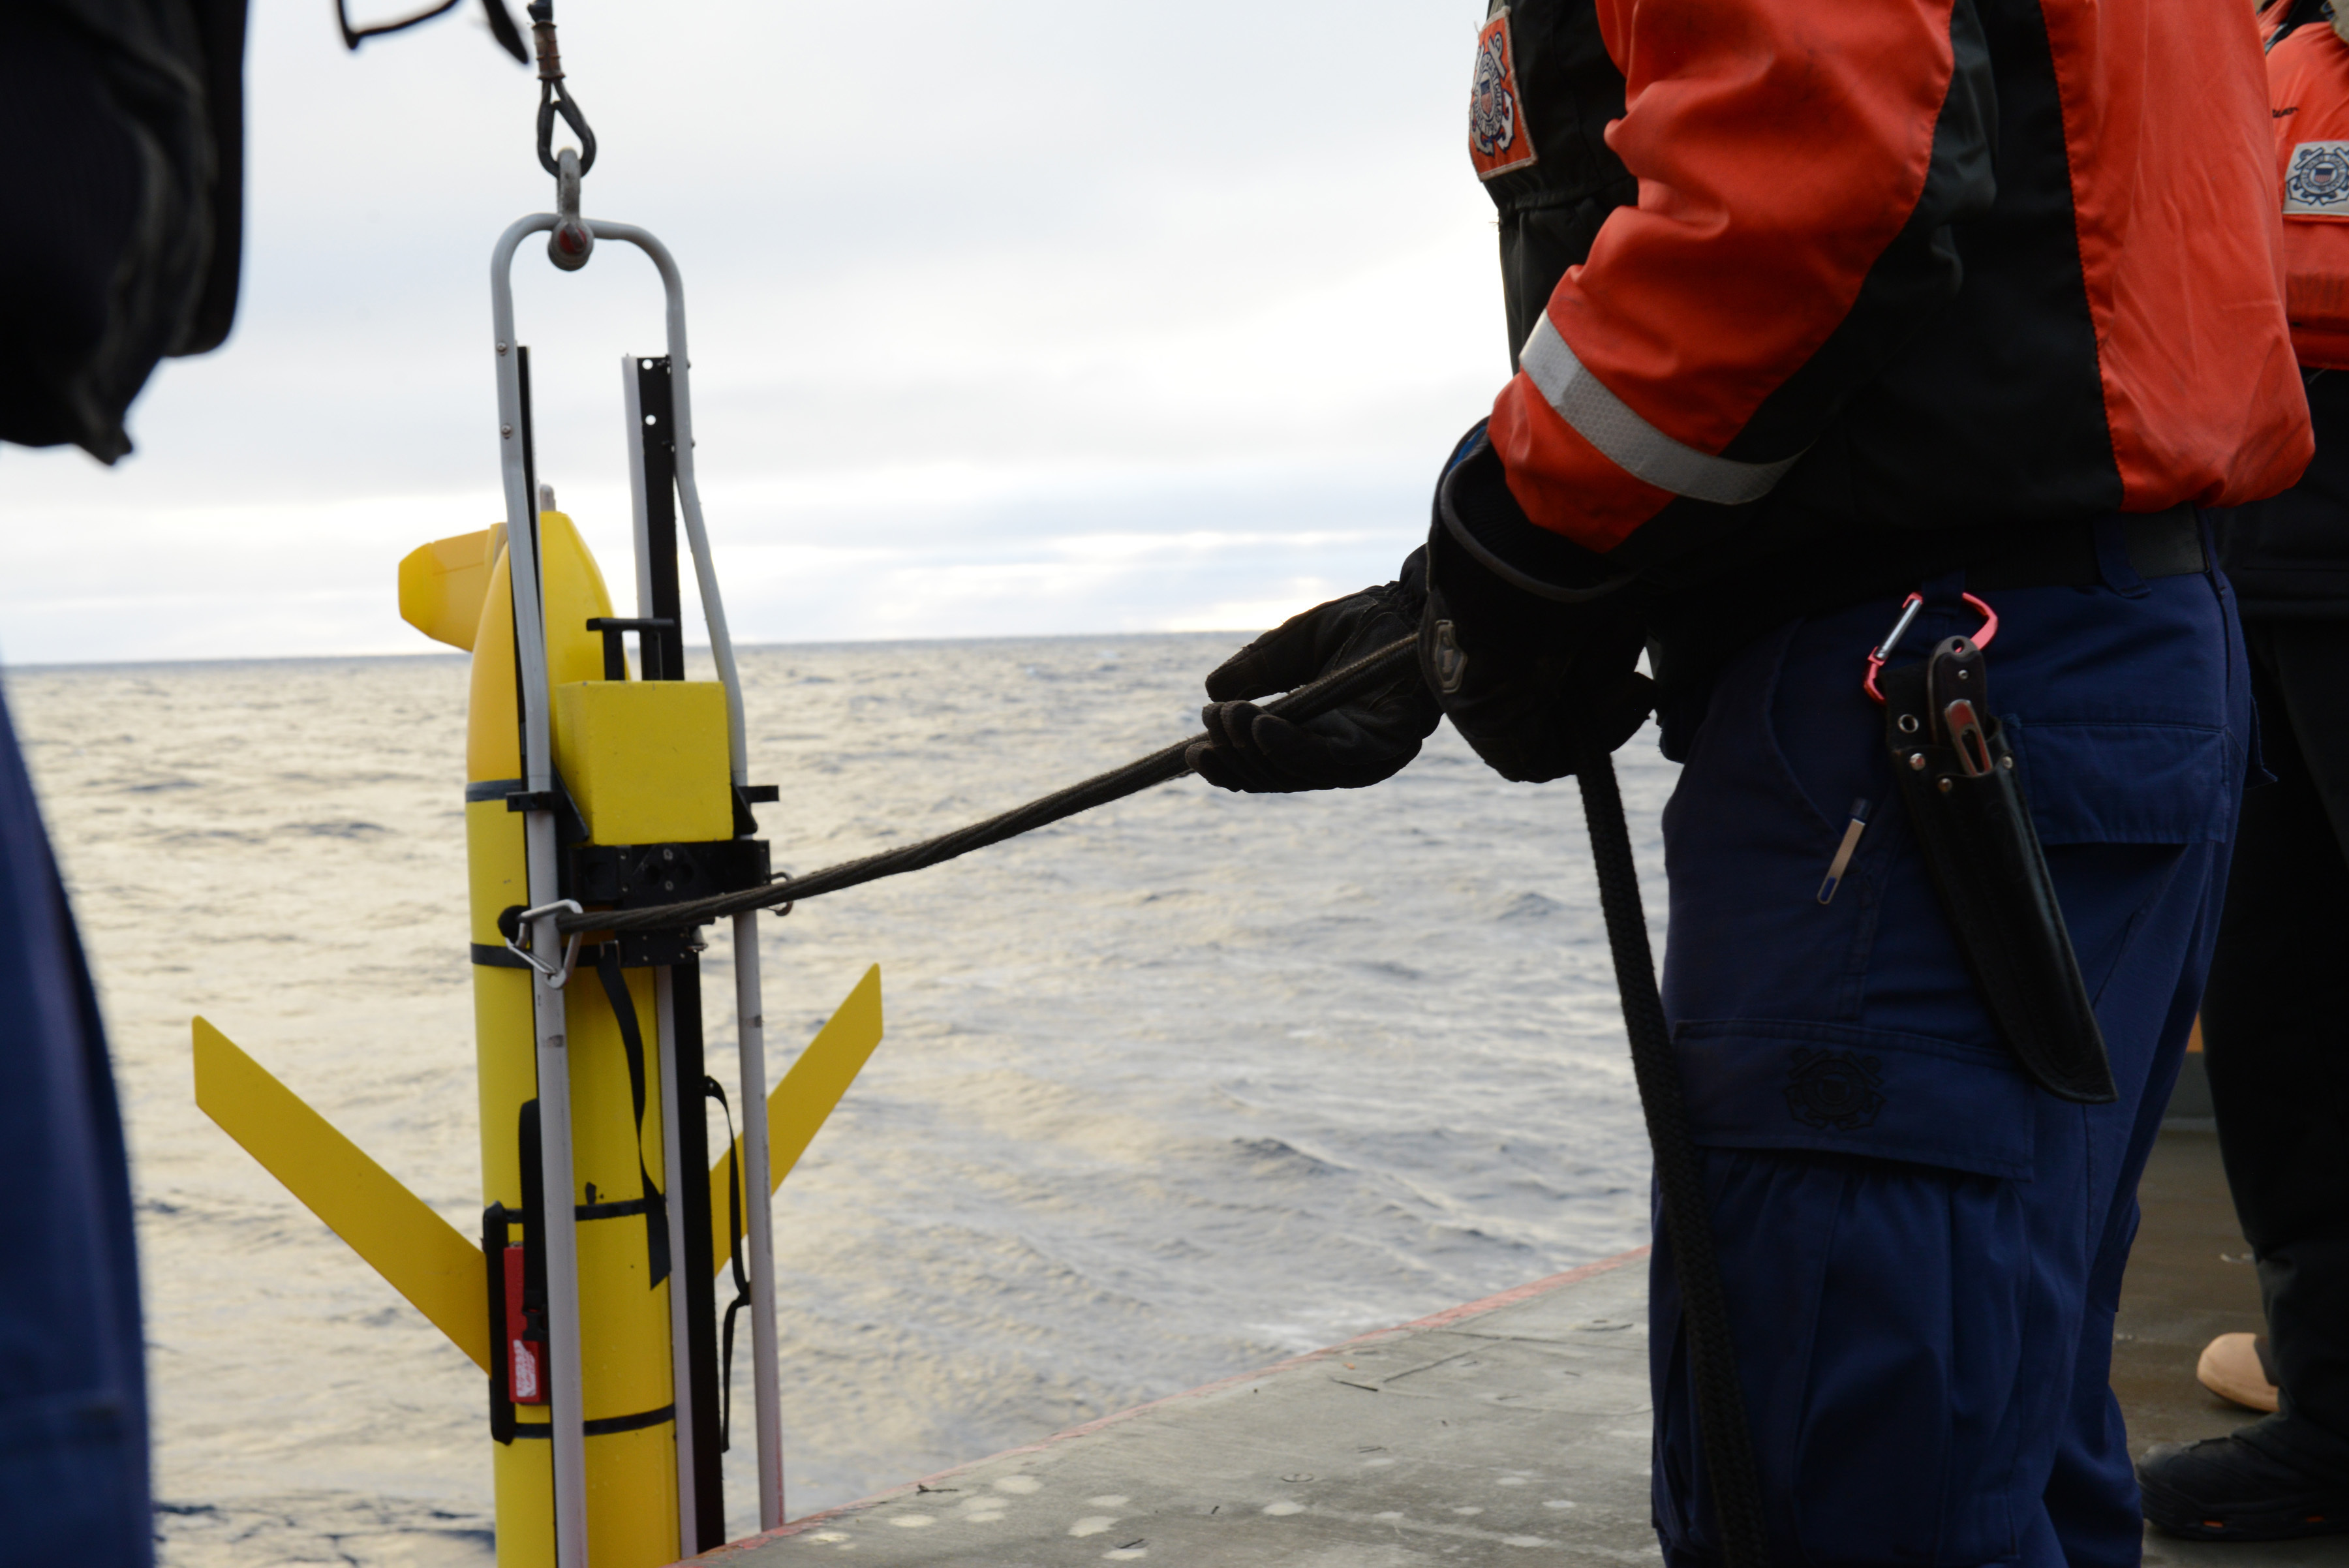 A crewmember aboard Coast Guard Cutter Healy guides a Sea Glider down to the water while transiting the Arctic on Sept. 20, 2016. Scientists aboard the Healy deploy measuring instruments to collect data on the ever-changing Arctic. U.S. Coast Gaurd photo by Petty Officer 3rd Class Lauren Steenson.